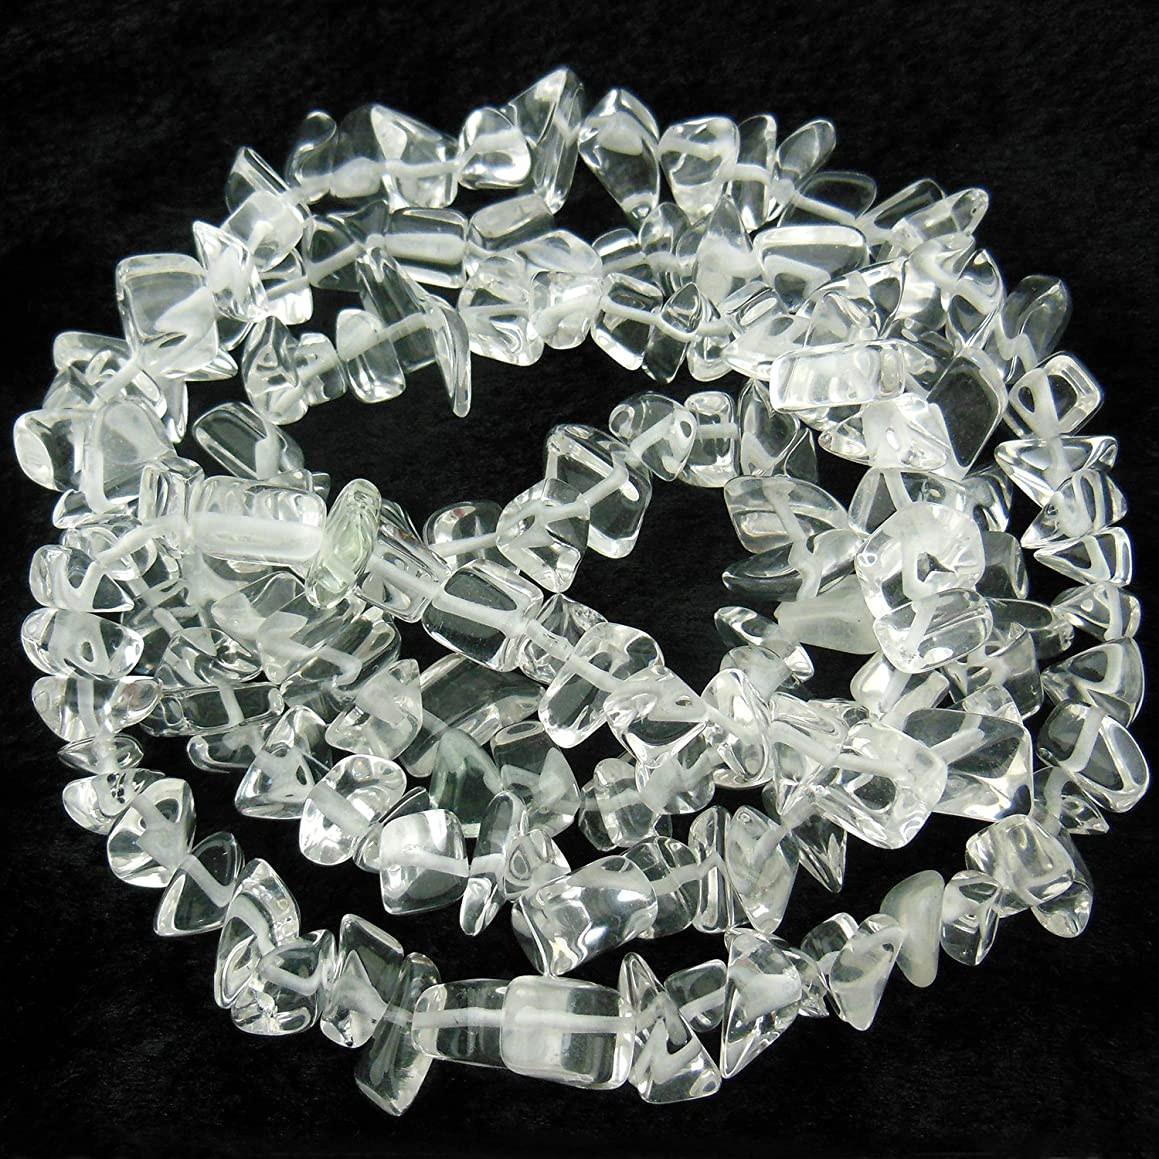 COIRIS 33'' Strand 9-16MM Clear Quartz Crystal Loose Beads Chips Stone for Jewelry DIY Making (St-1081) t27635835254